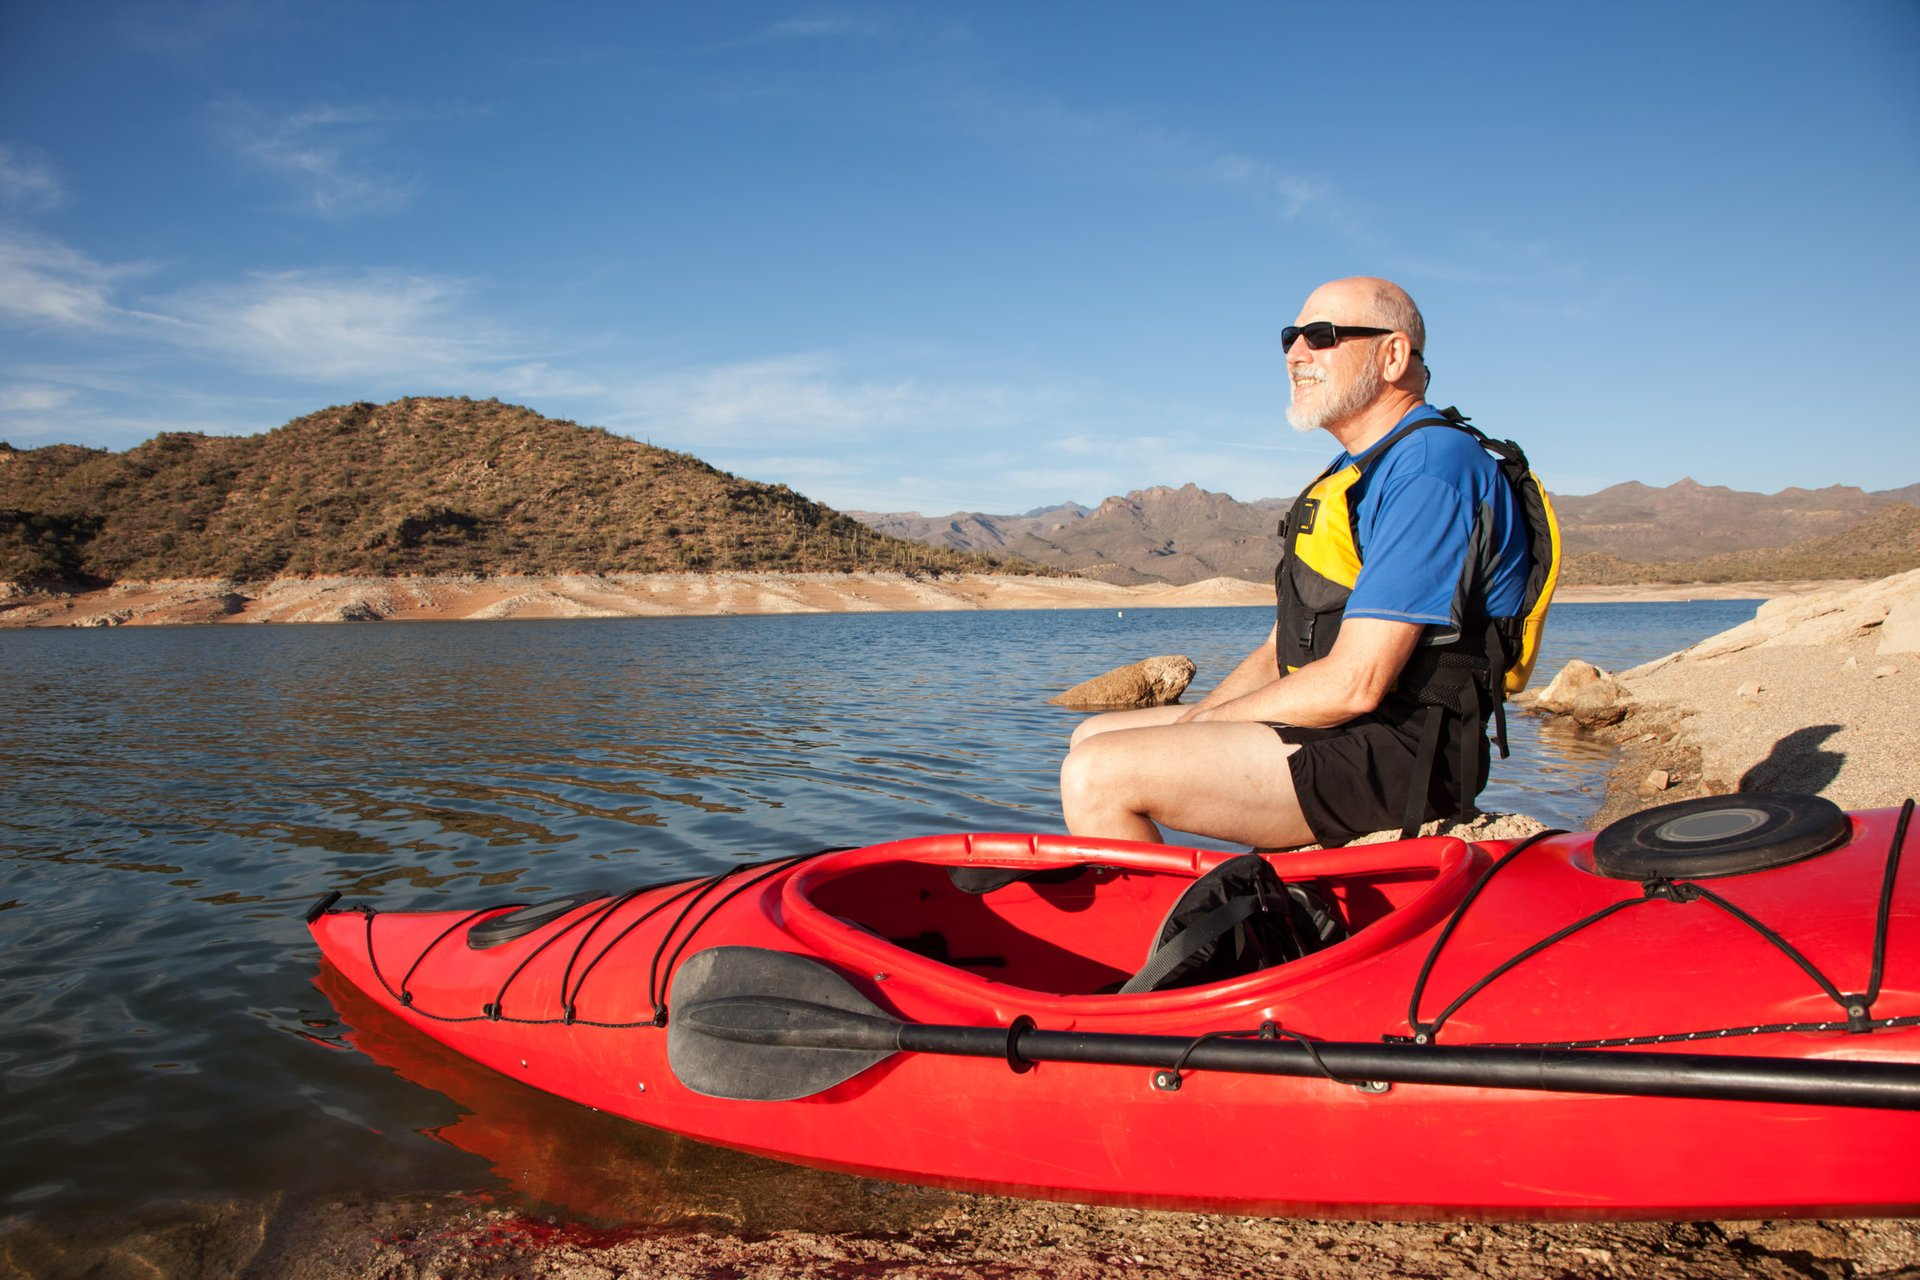 A senior takes a break on the shore of Bartlett Lake in Arizona during a kayak ride